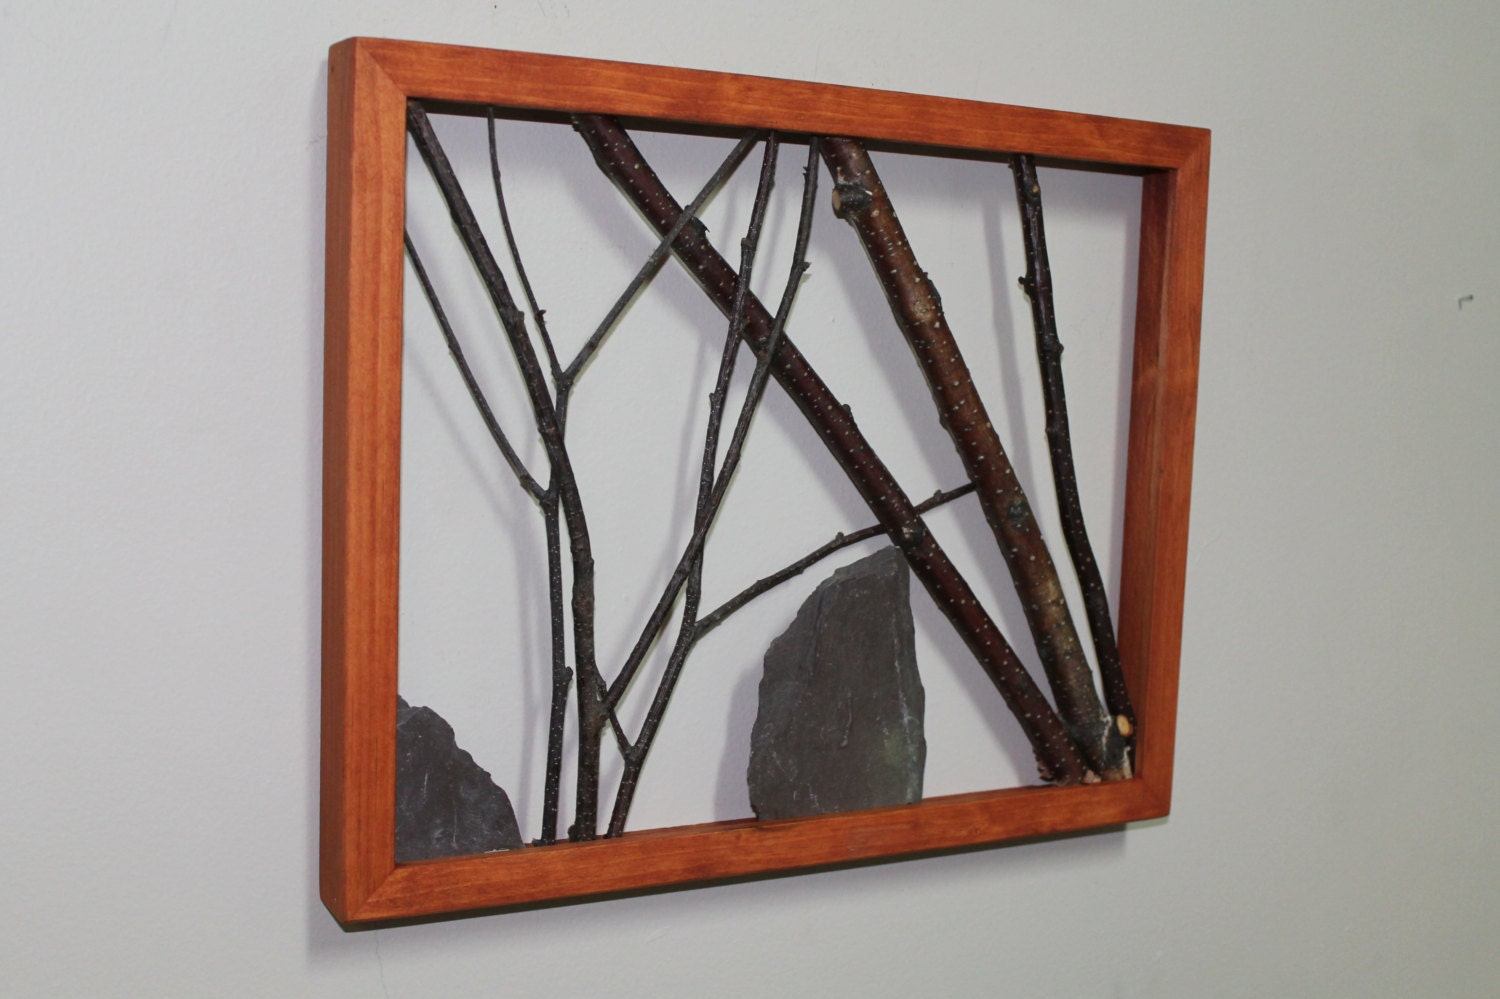 White birch twig wall art framed branch art rustic decor for White wall art